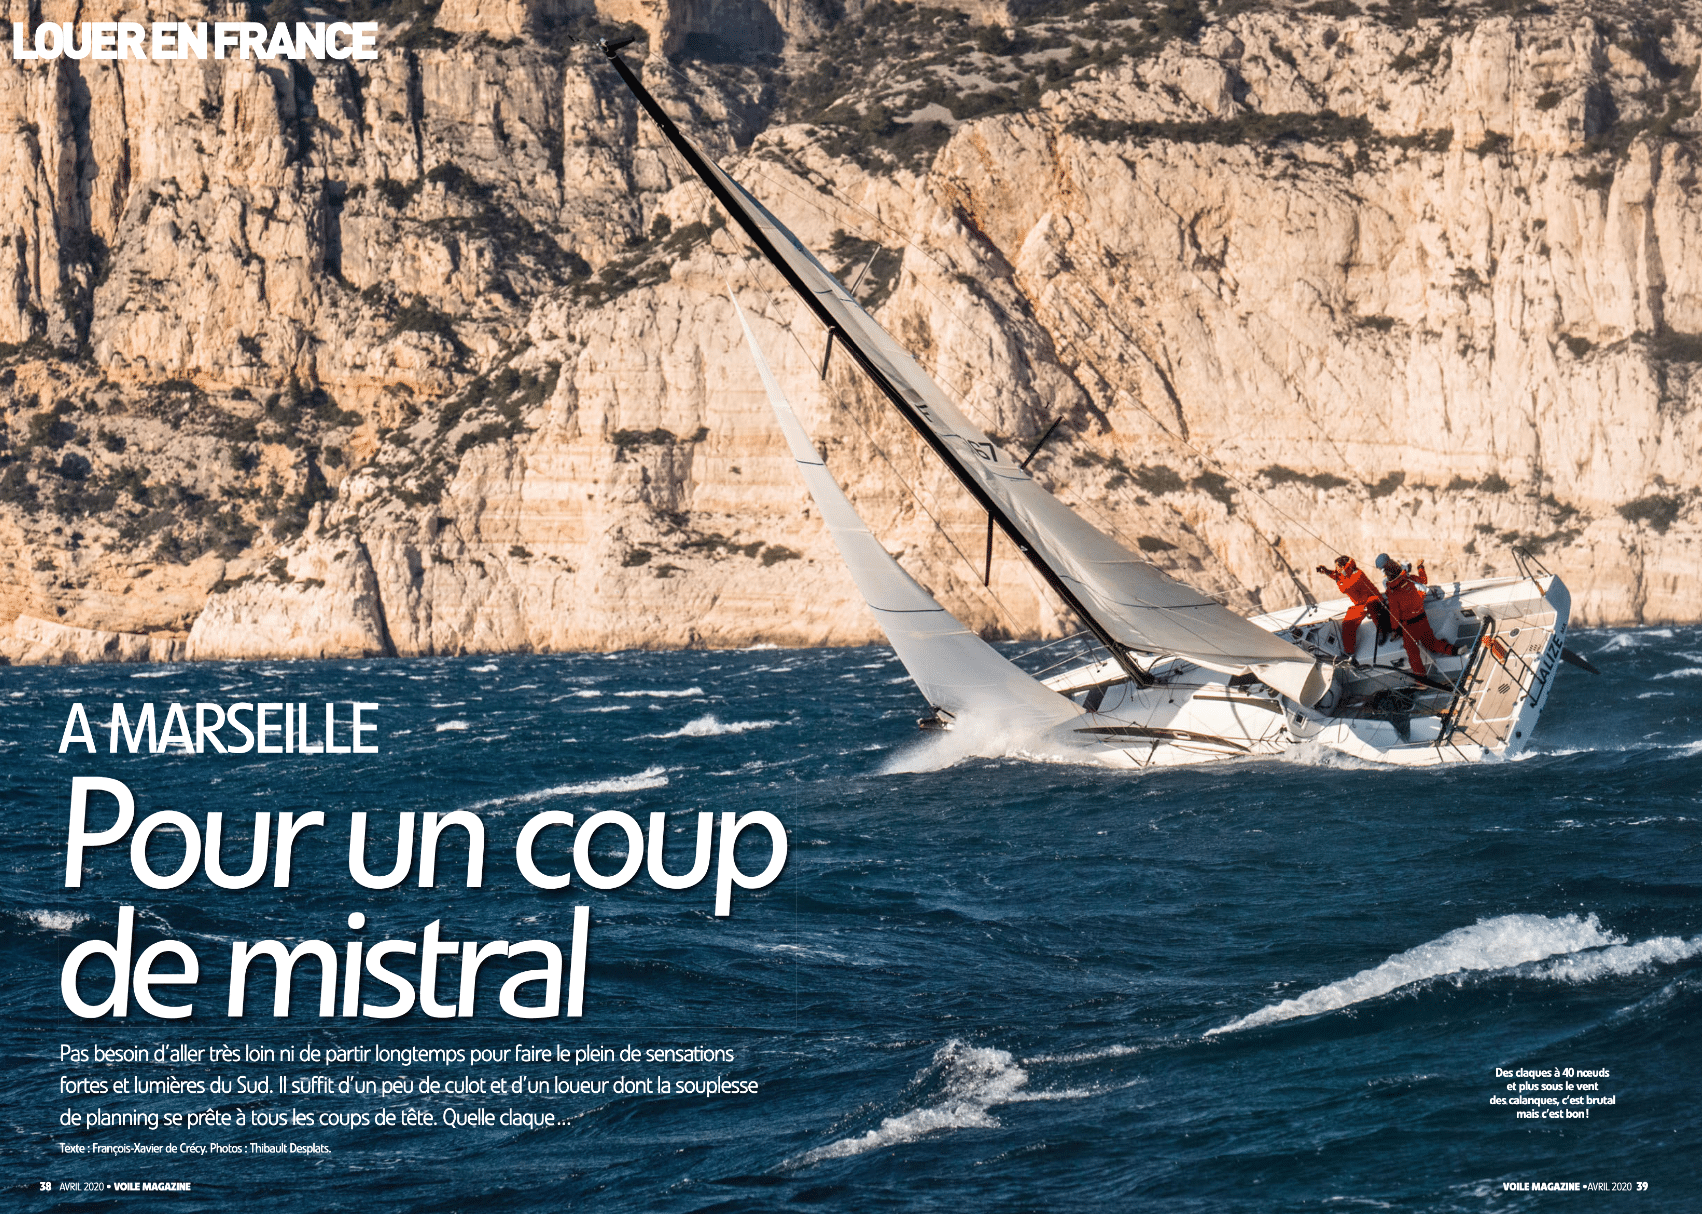 01 - Louer en France le temps d'un week-end (Voile Magazine Avril 2020)